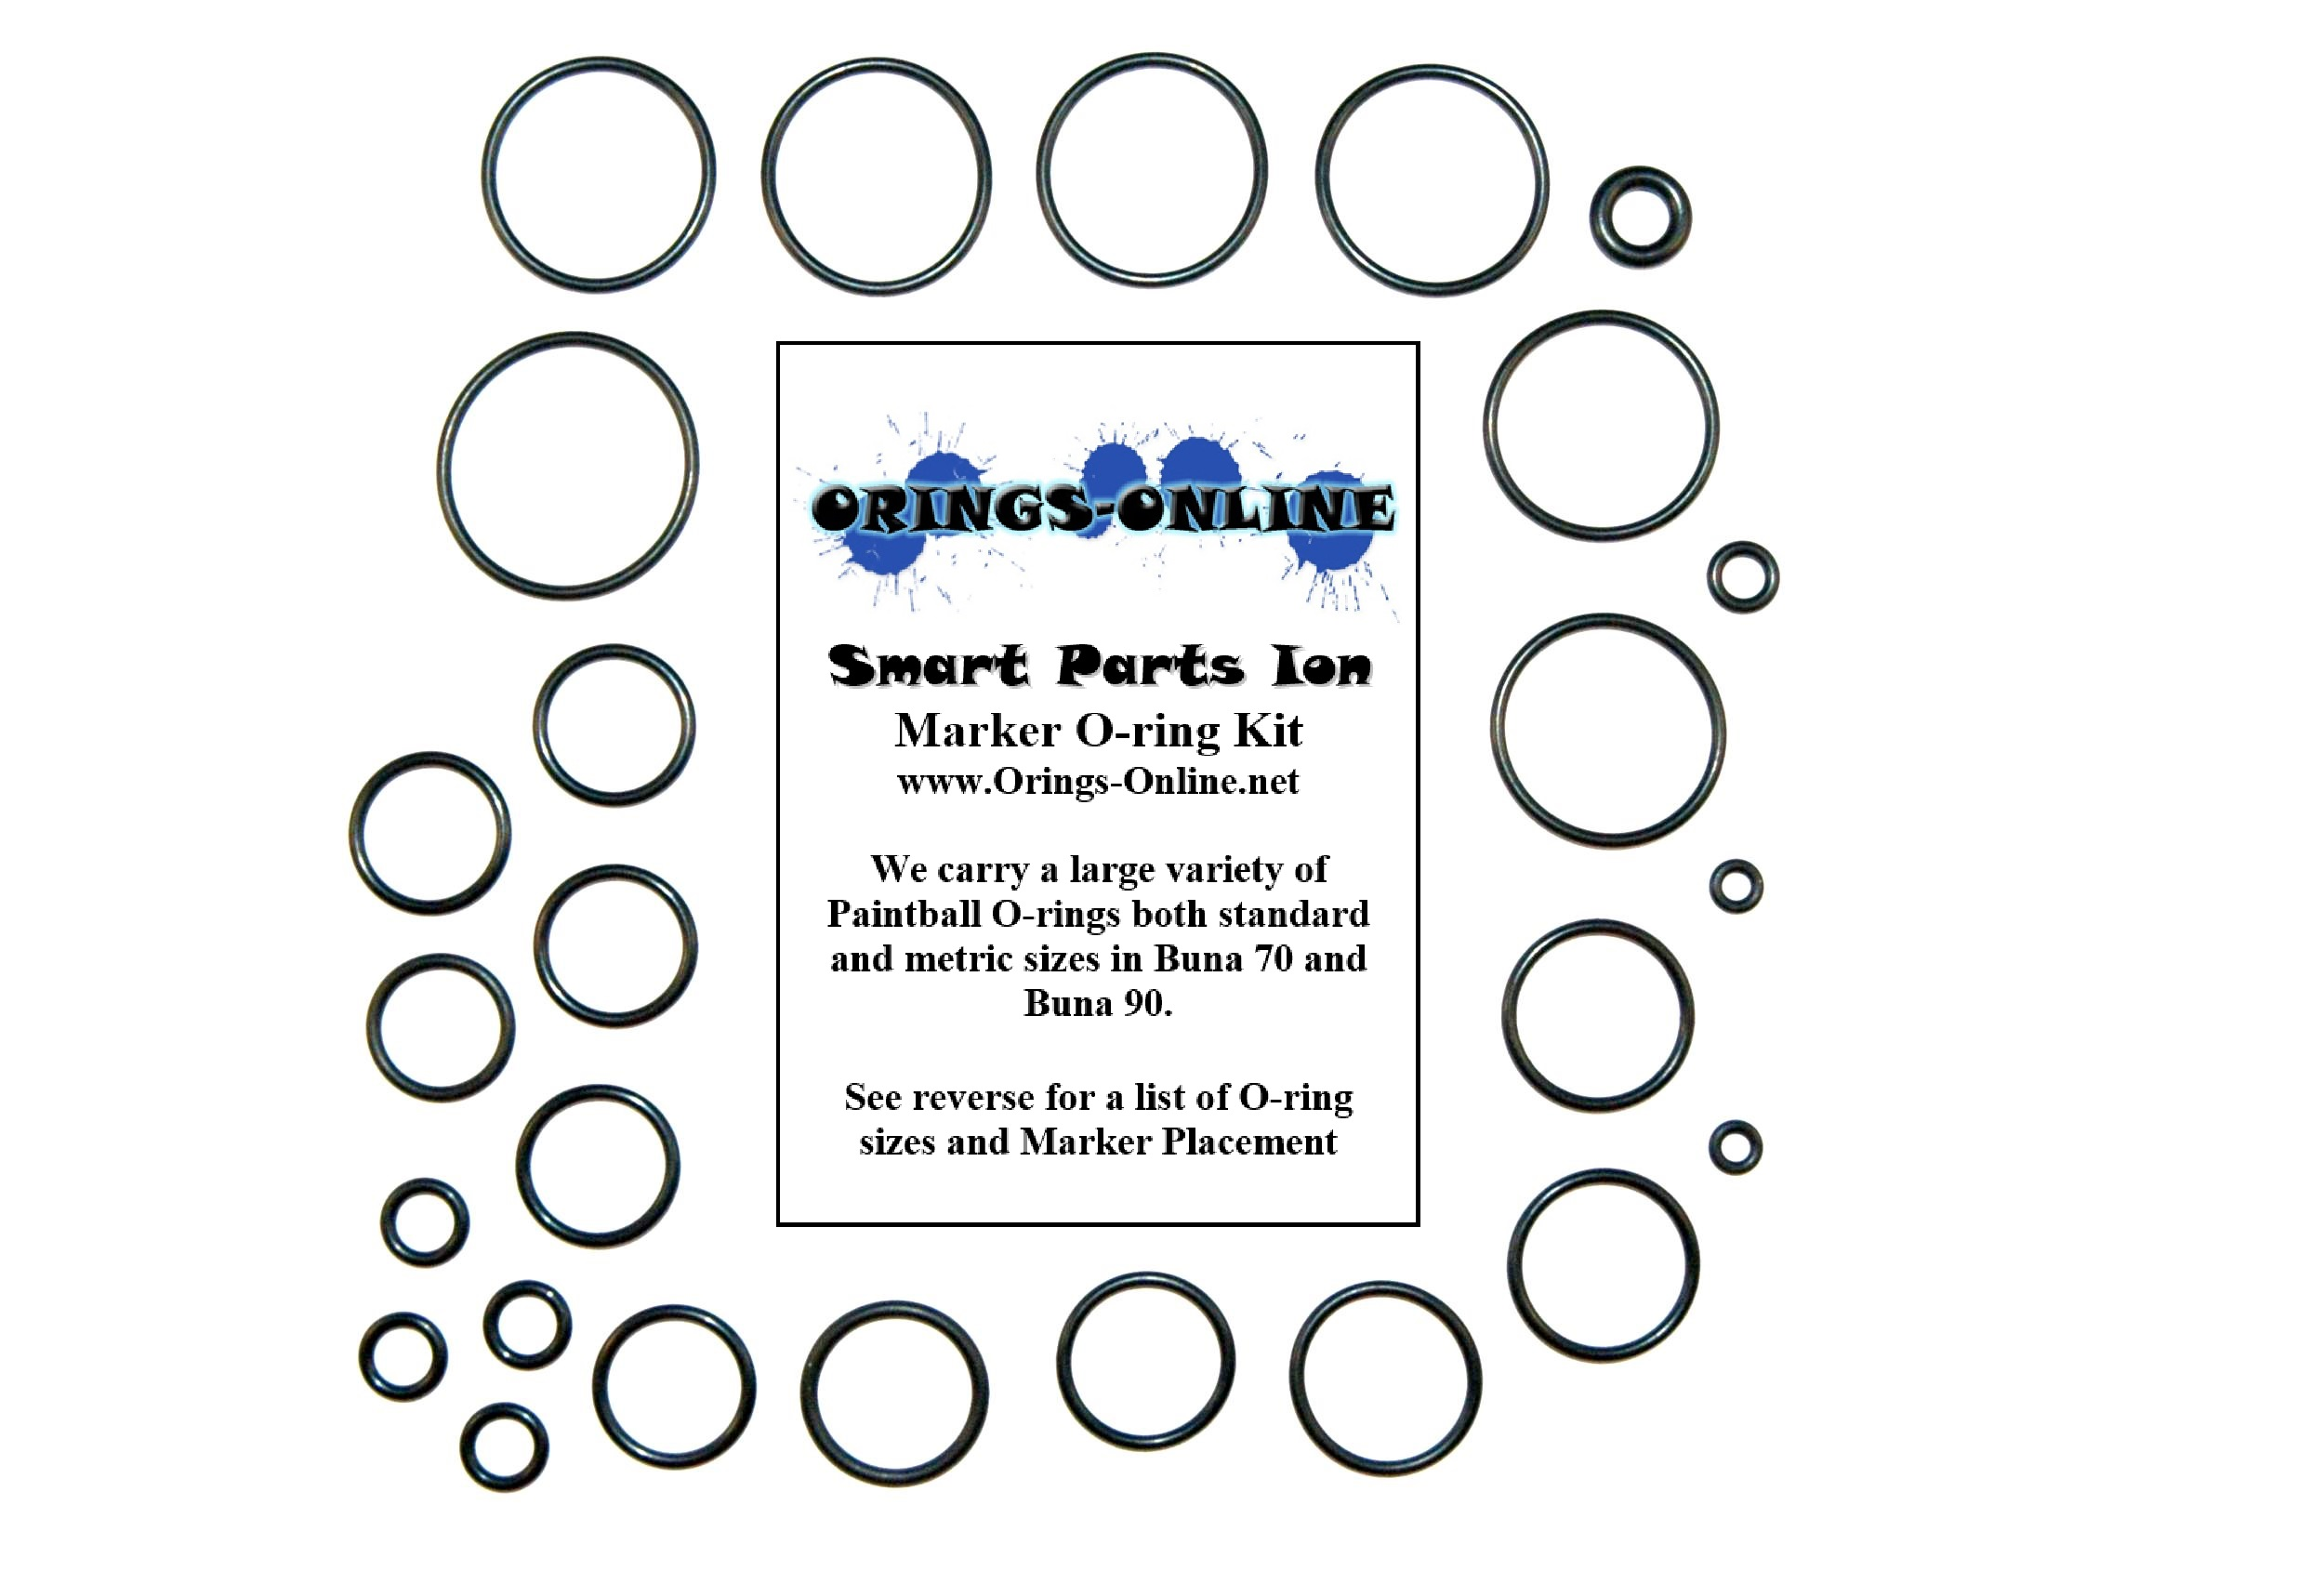 Smart Parts - Ion Marker O-ring Kit